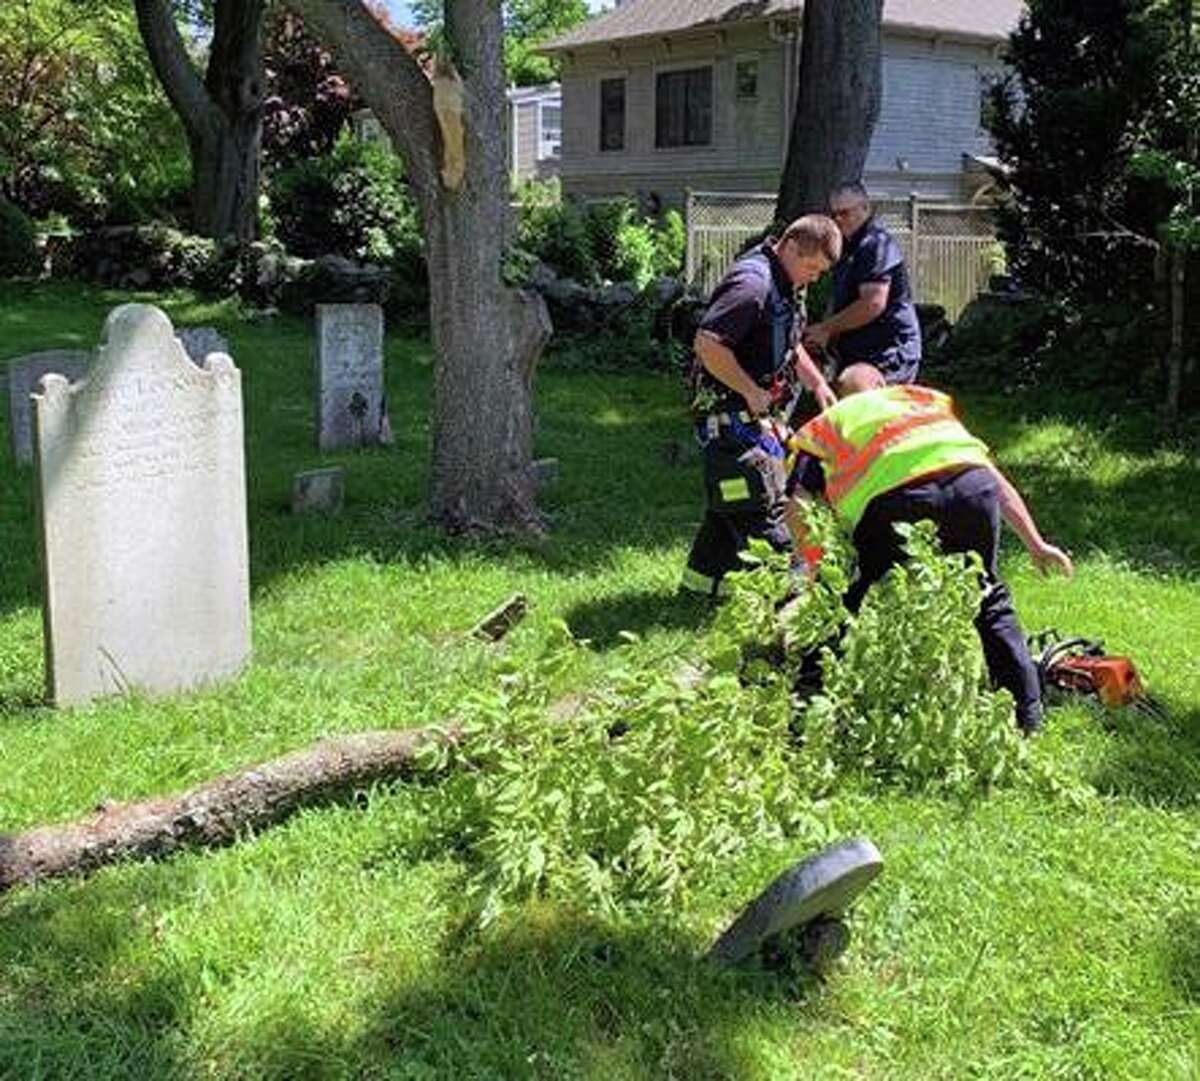 The Greenwich, Conn., Fire Department's Engine 5 crew cut up and removed a tree limb from Tomac Burial Ground.